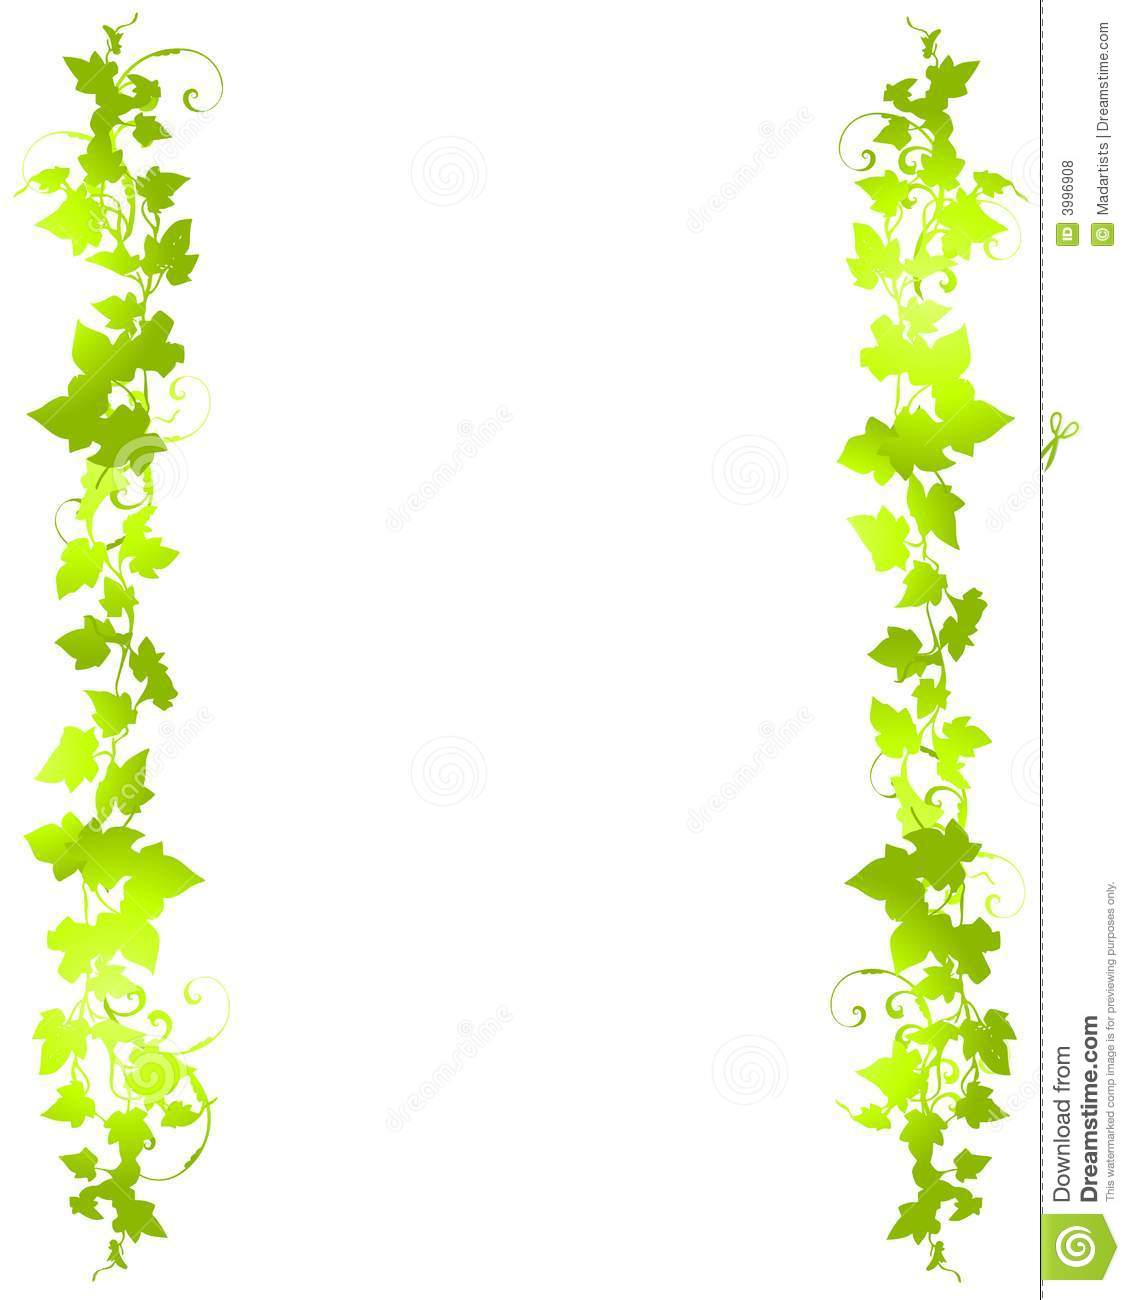 hight resolution of free clipart background and border